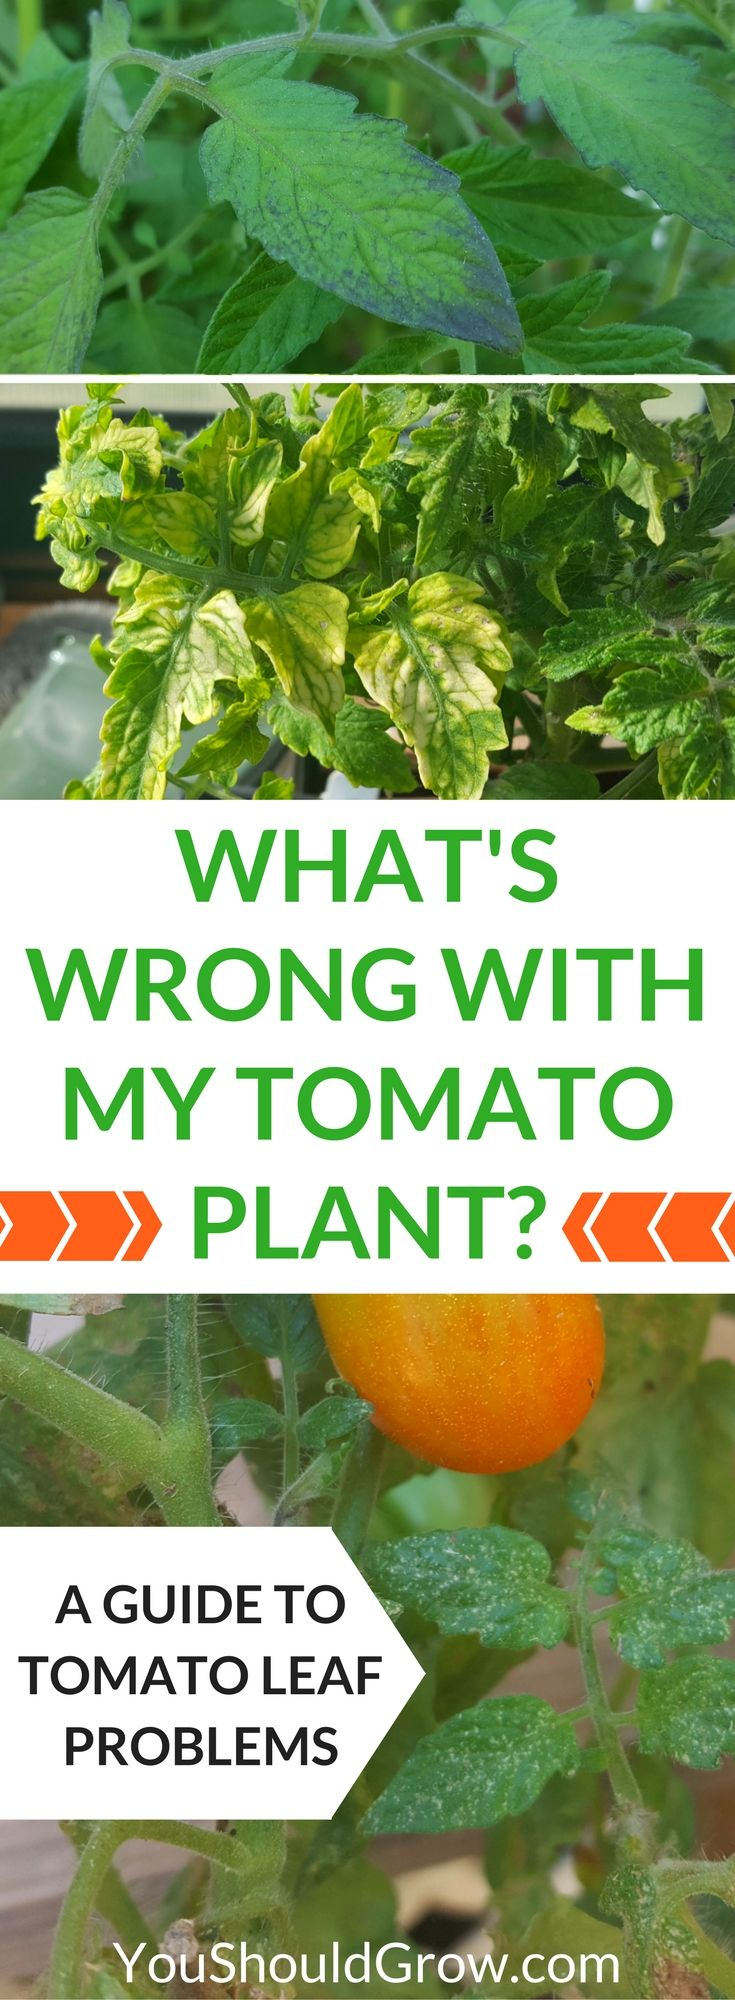 "Why+are+your+tomato's+leaves+yellow,+spotty,+or+wilted?+Homegrown+tomatoes+can+suffer+from+a+variety+of+pest+and+disease+issues.+If+you're+wondering,+""What's+wrong+with+my+tomato+plant?""+Use+this+guide+to+tomato+leaf+problems+to+figure+out+what's+wrong+and+what+you+can+do+about+it.+via+@whippoorwillgar"